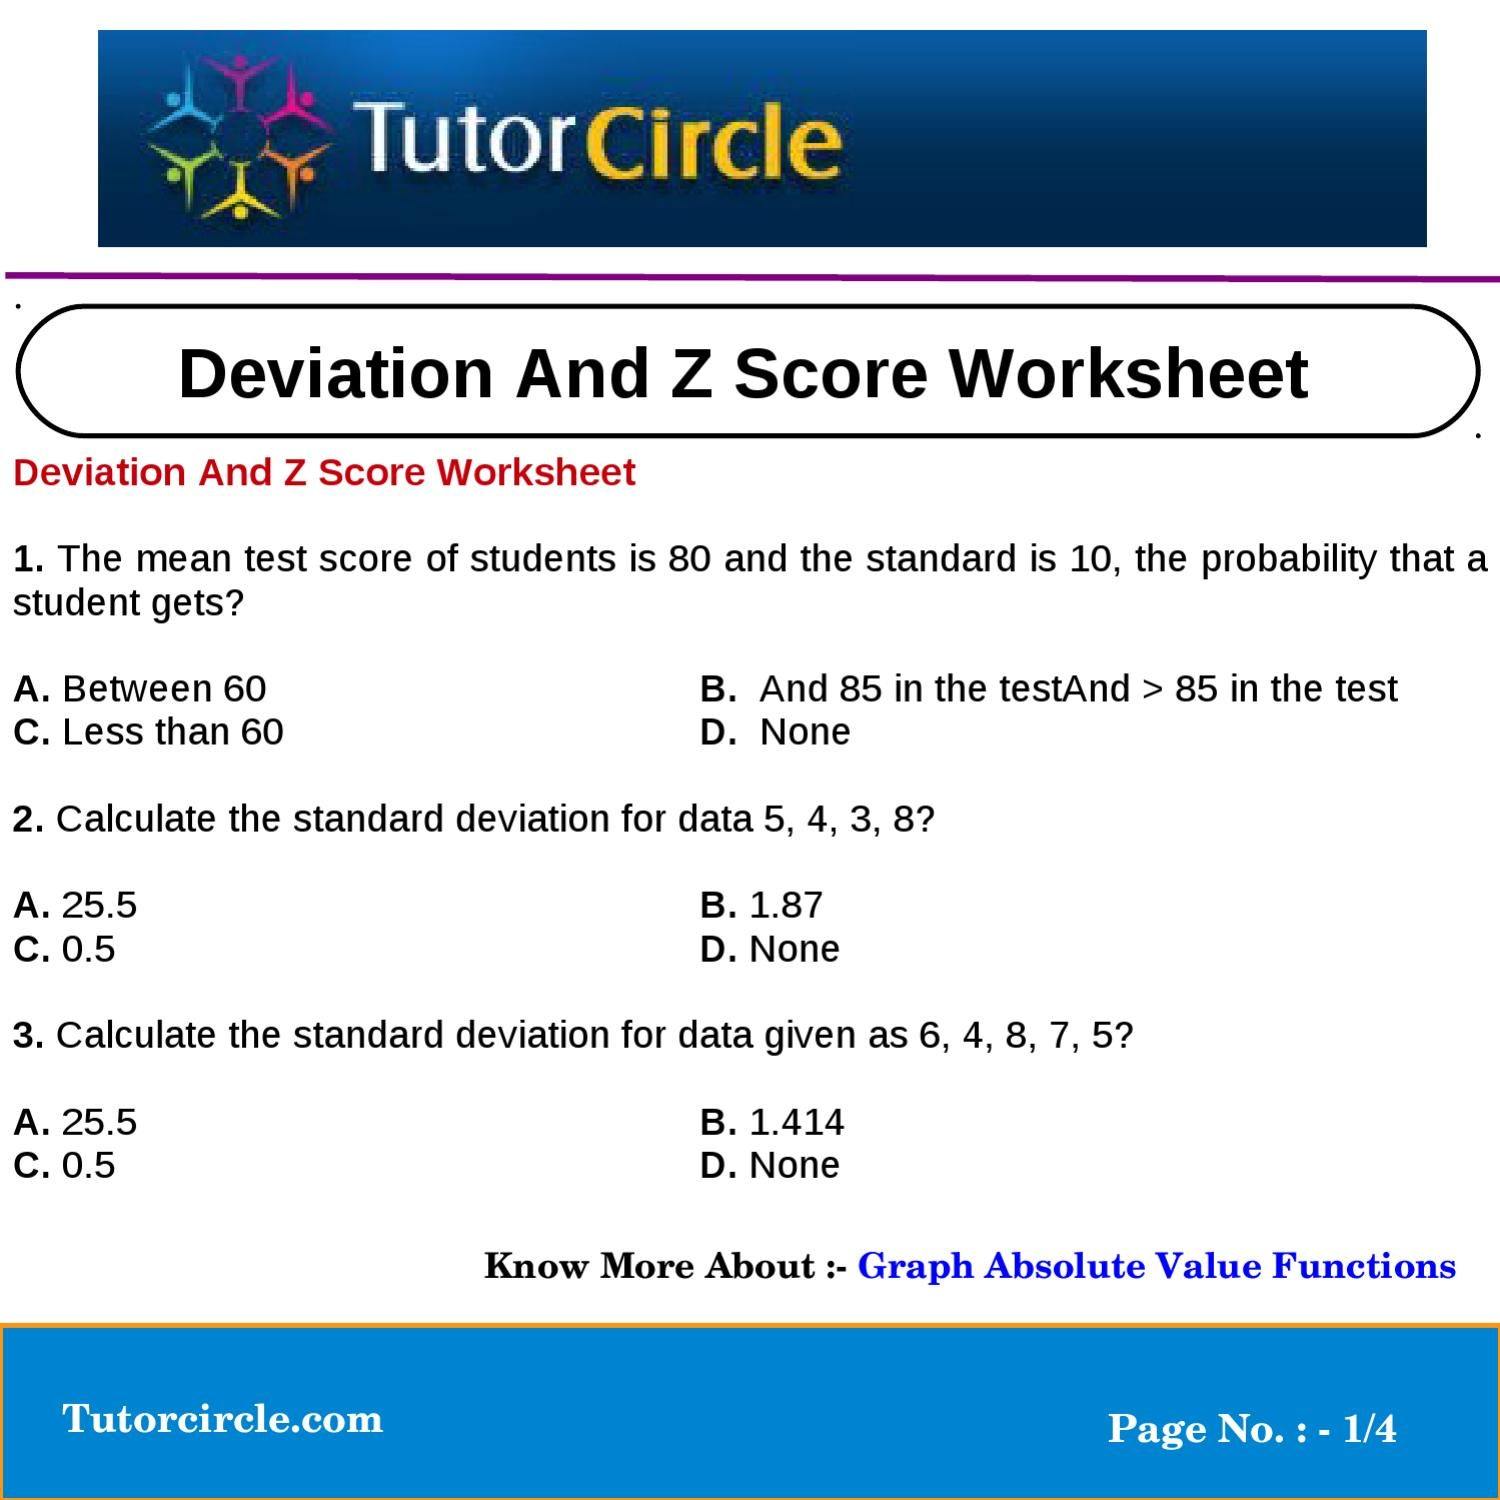 Deviation And Z Score Worksheet by tutorcircle team - issuu